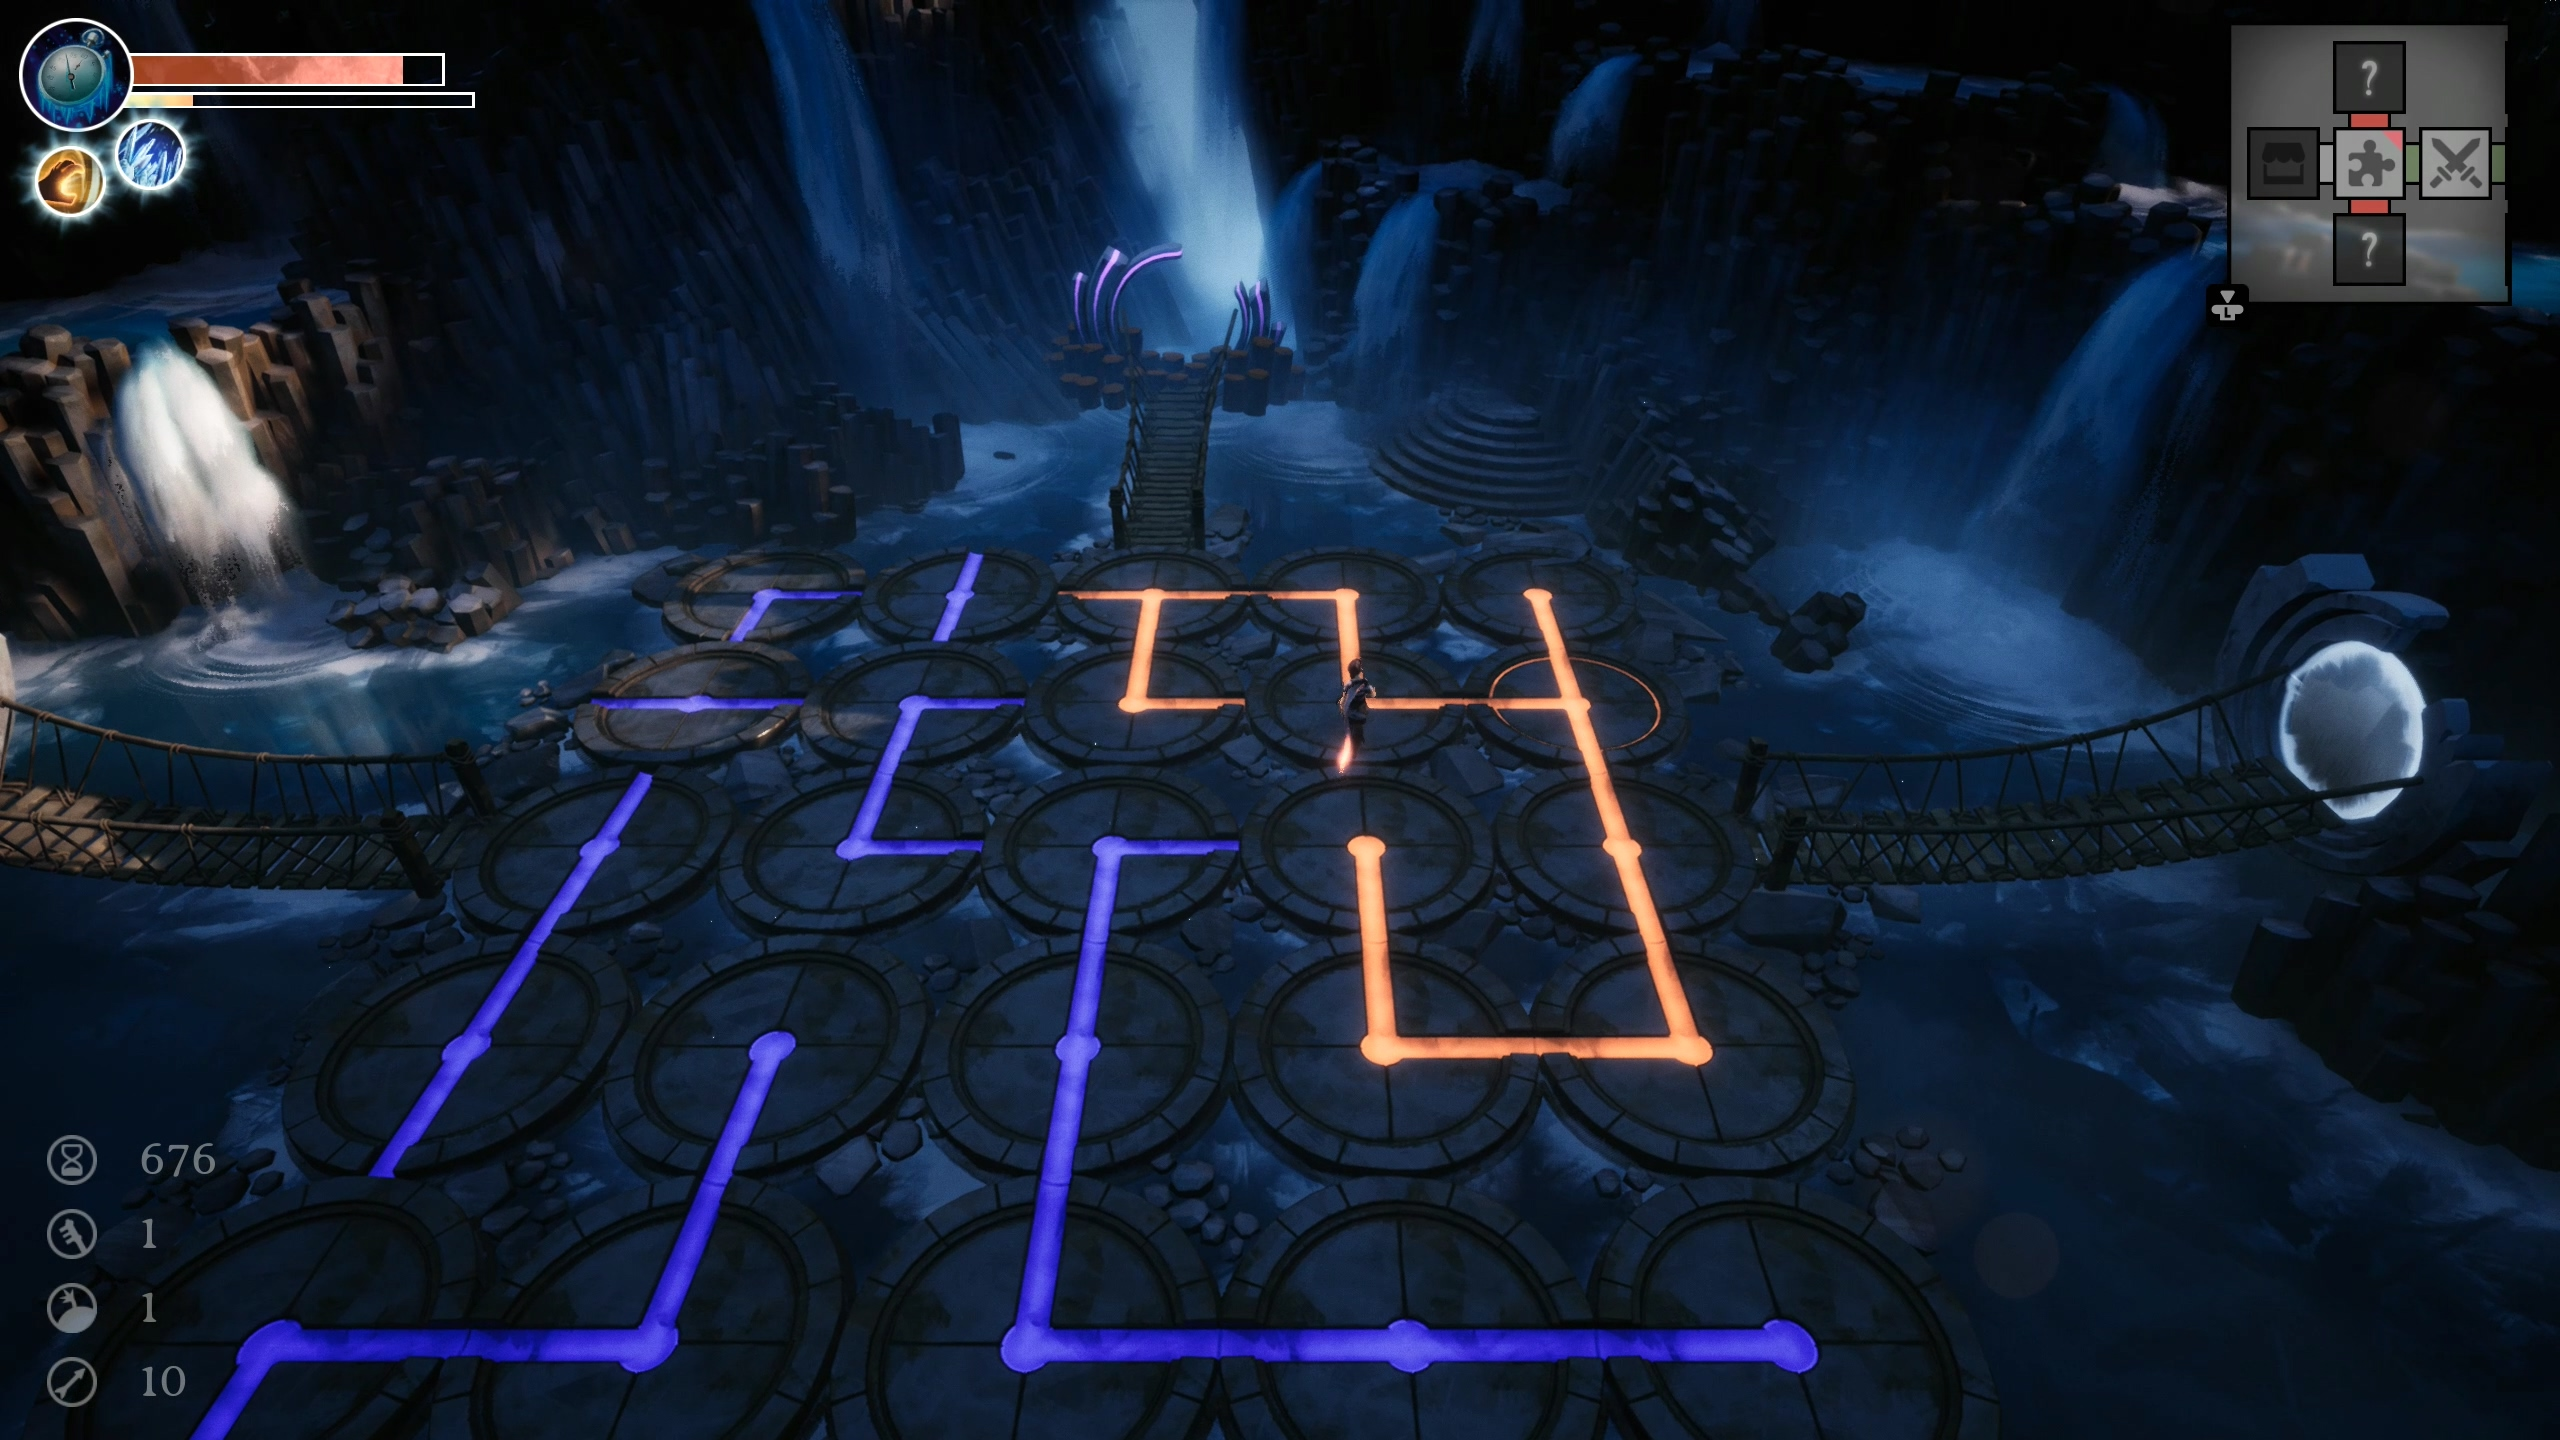 A screenshot of a floor puzzle in Dreamscaper. The scene is of a cave with rotating circles on the floor. Each has a coloured line or angle on top. The player must evidently rotate the circles into the correct positions such that they form one unbroken line from one side of the room to the other.